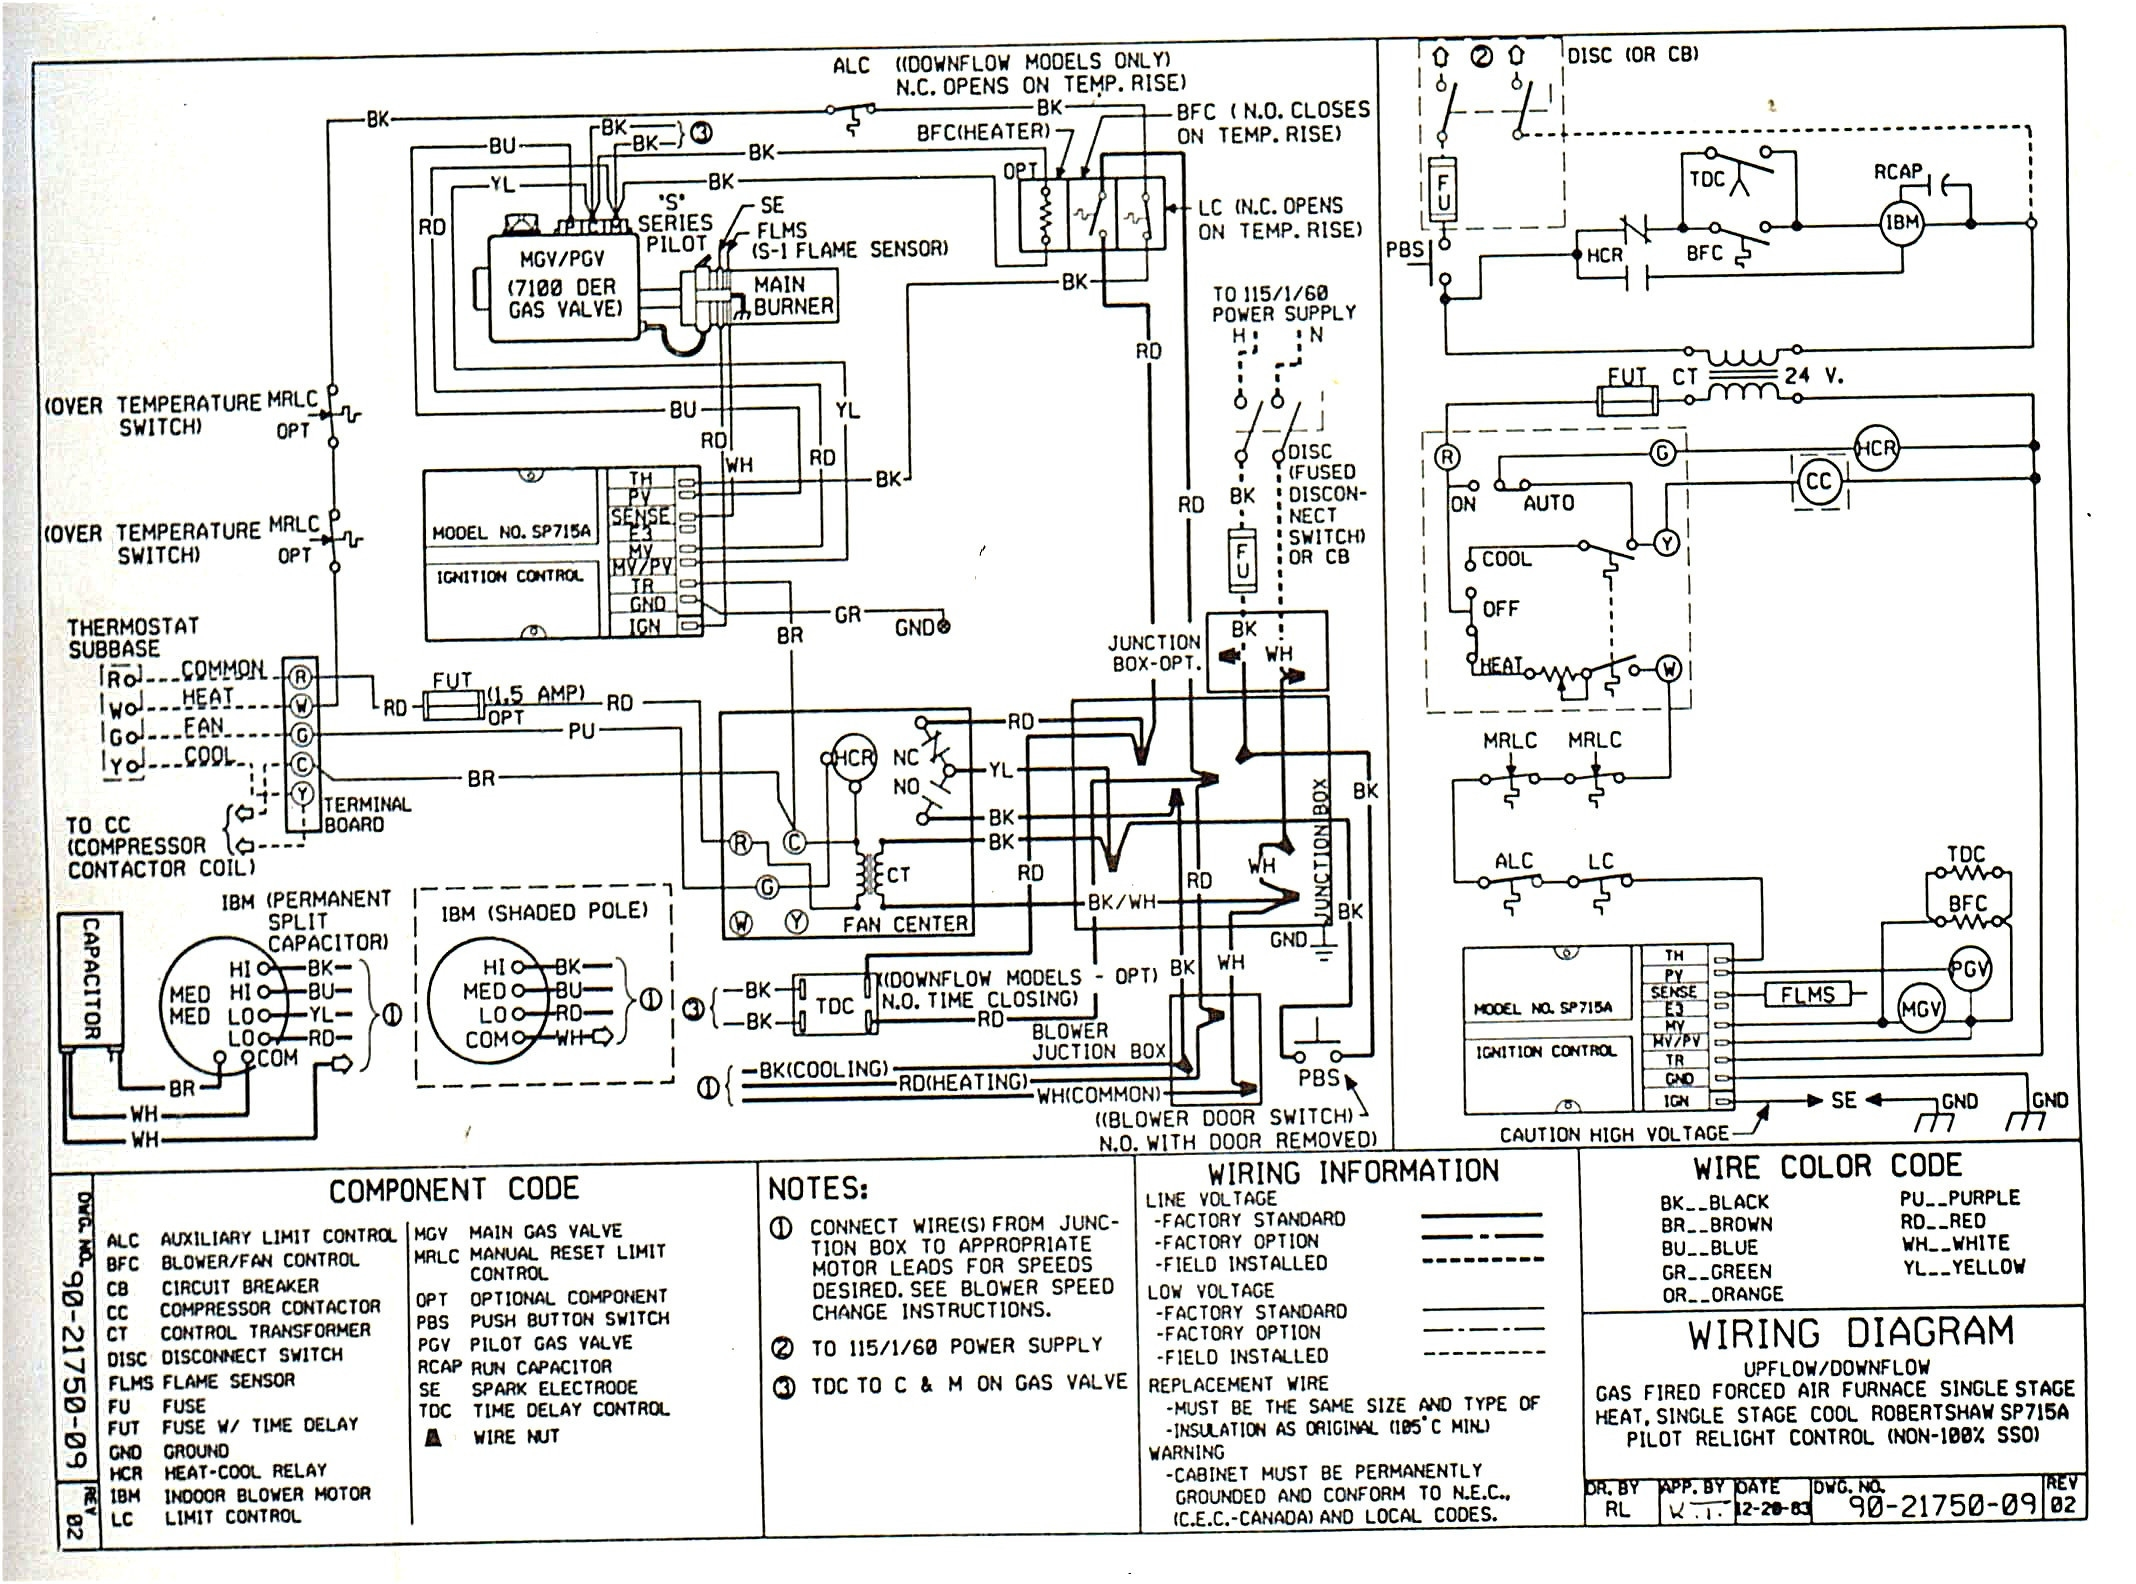 coleman mobile home furnace wiring diagram also electrical circuit